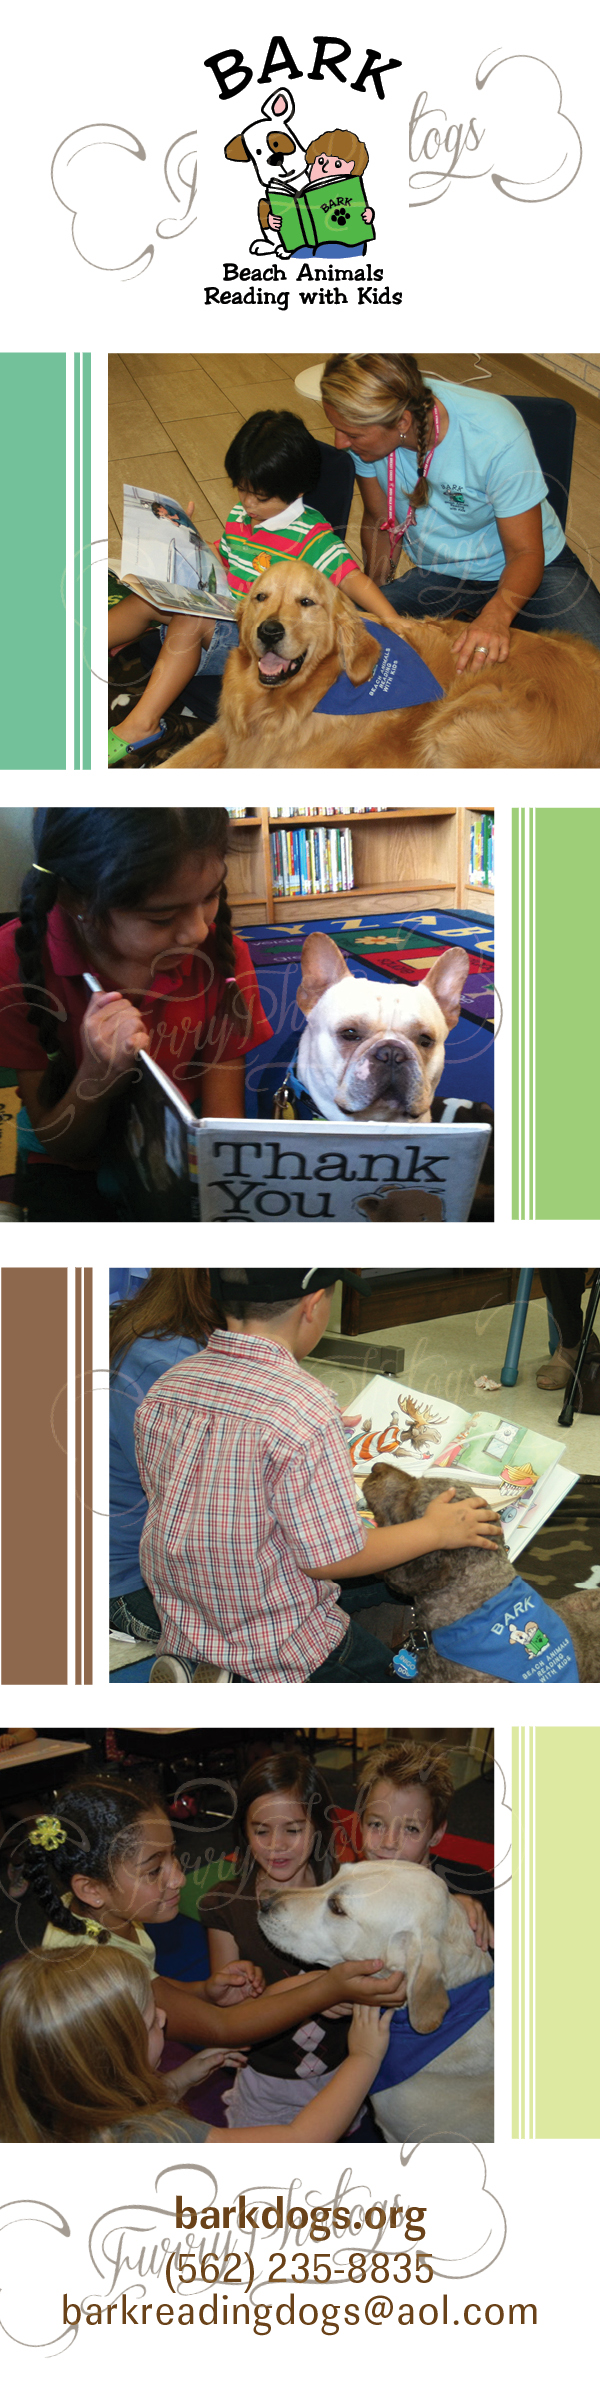 Custom Dog Bookmarks for Organizations